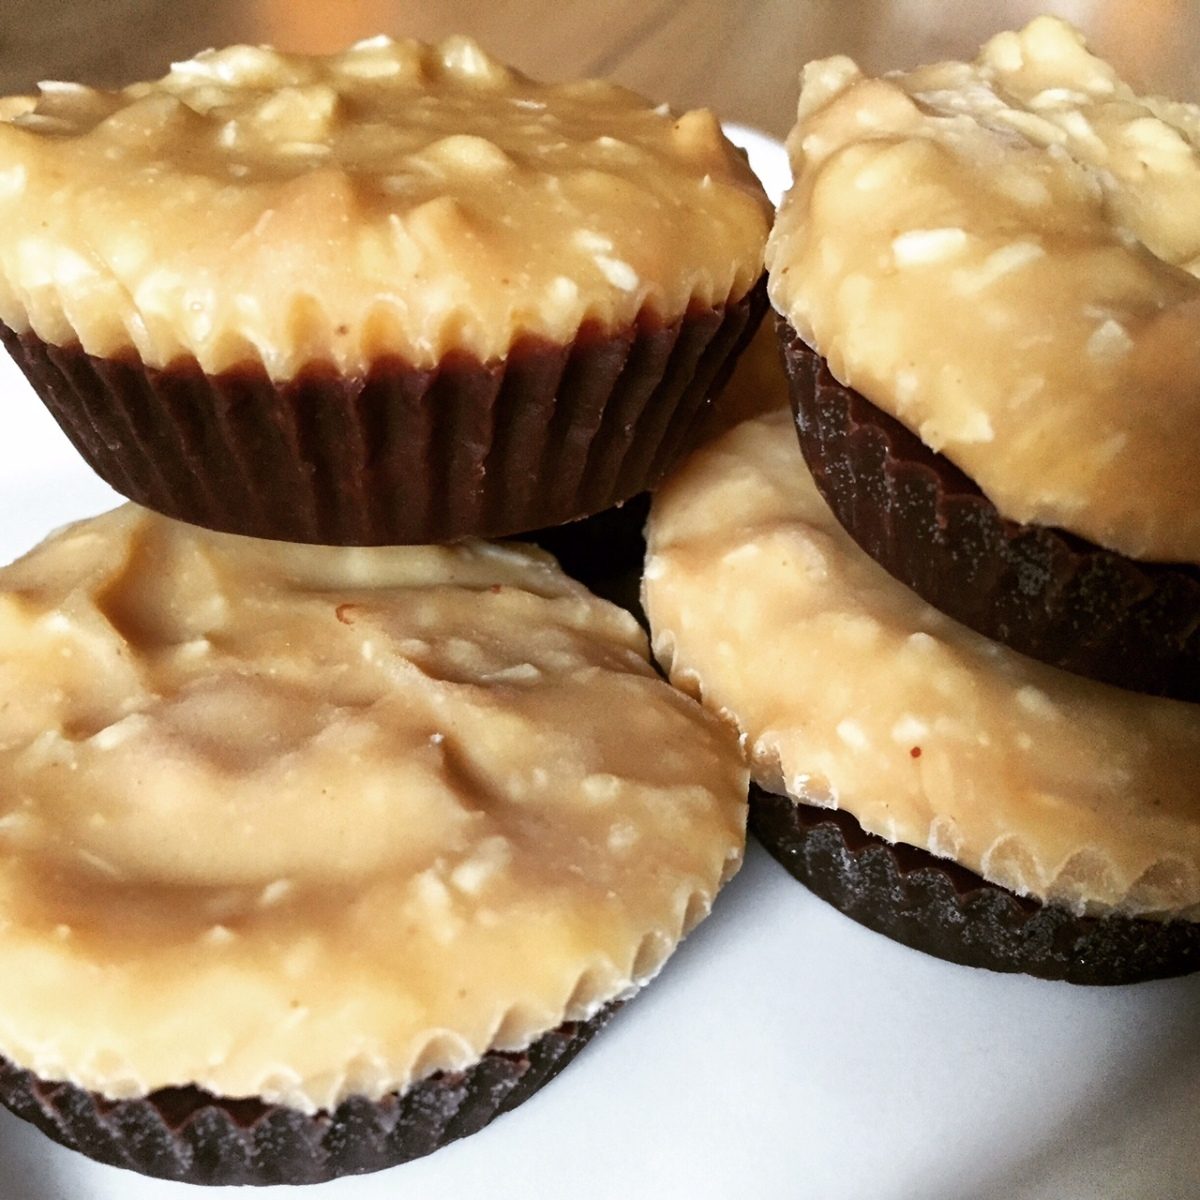 Home-made Peanut Butter Cups!